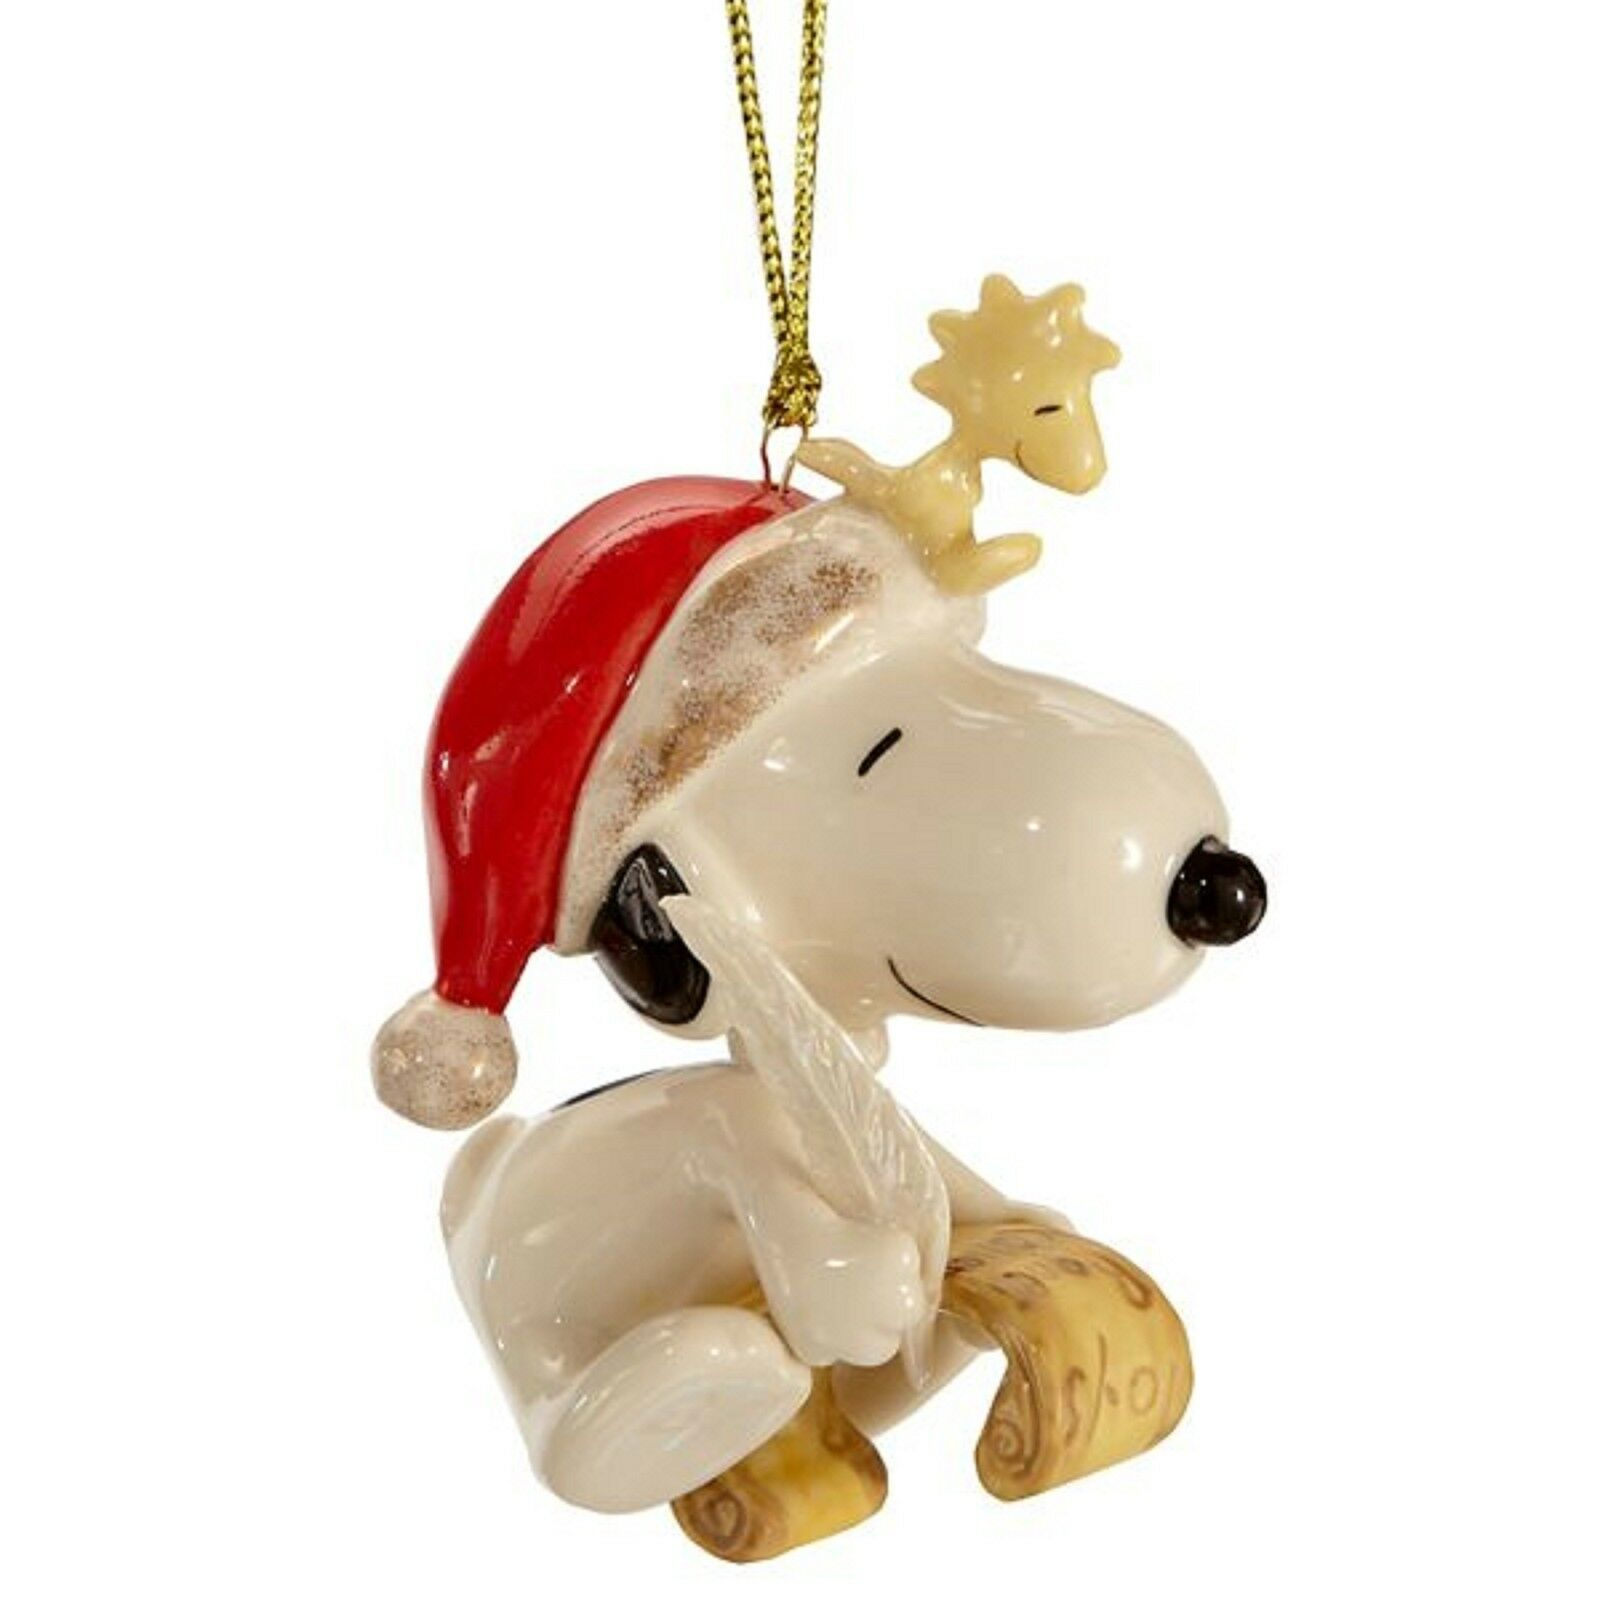 Lenox Snoopy's List For Santa Ornament Peanuts Woodstock Christmas Gift NEW